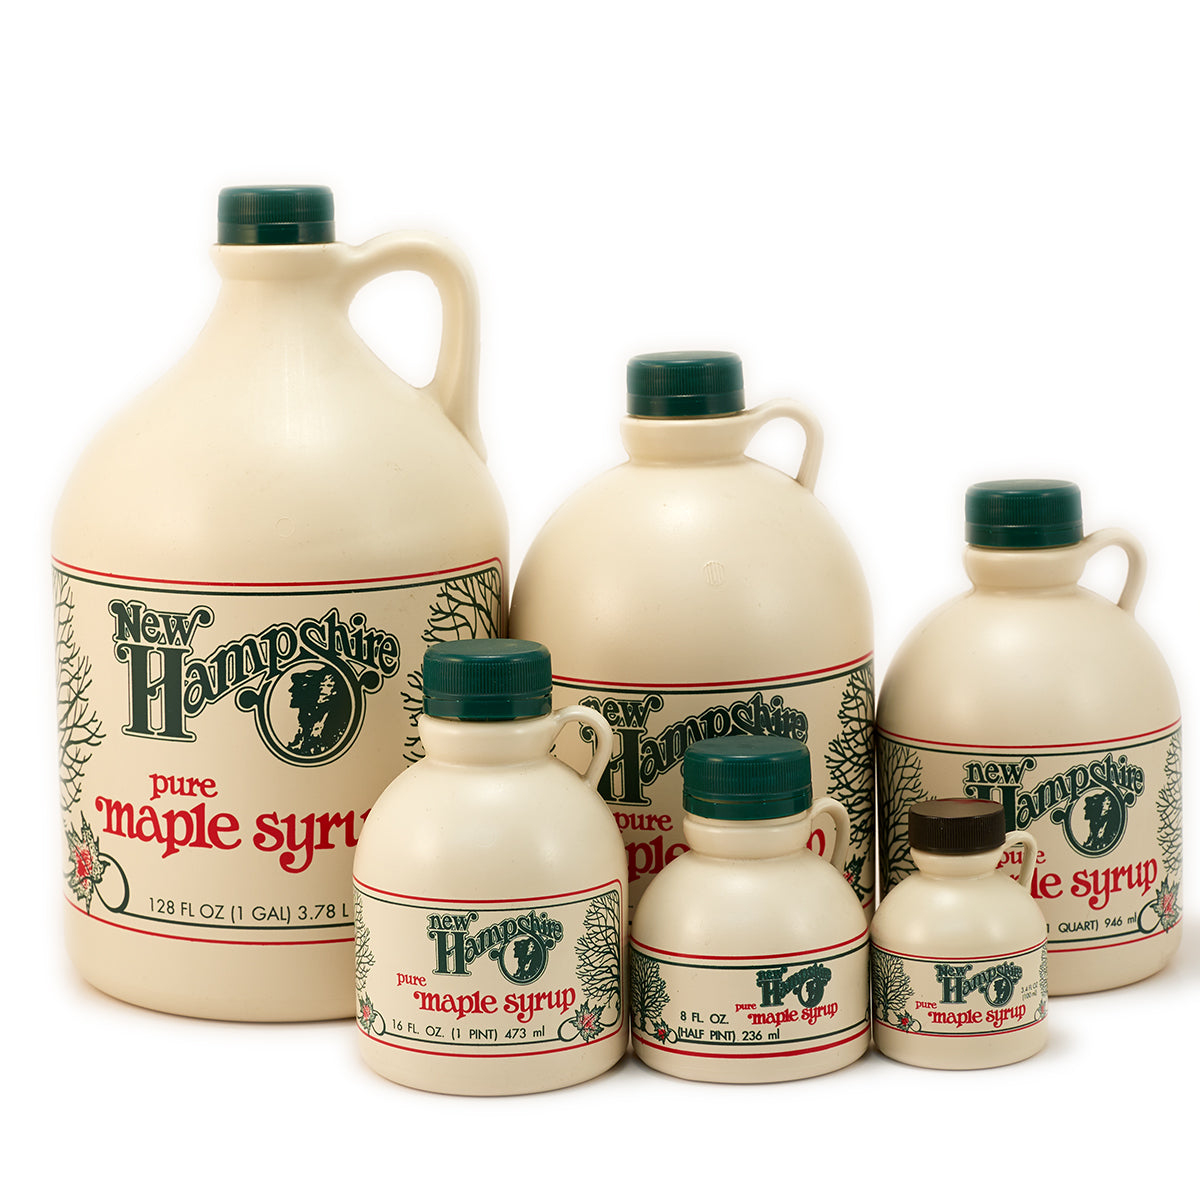 NH Assoc. 2-Color Gallon Jug (24 Per Case)